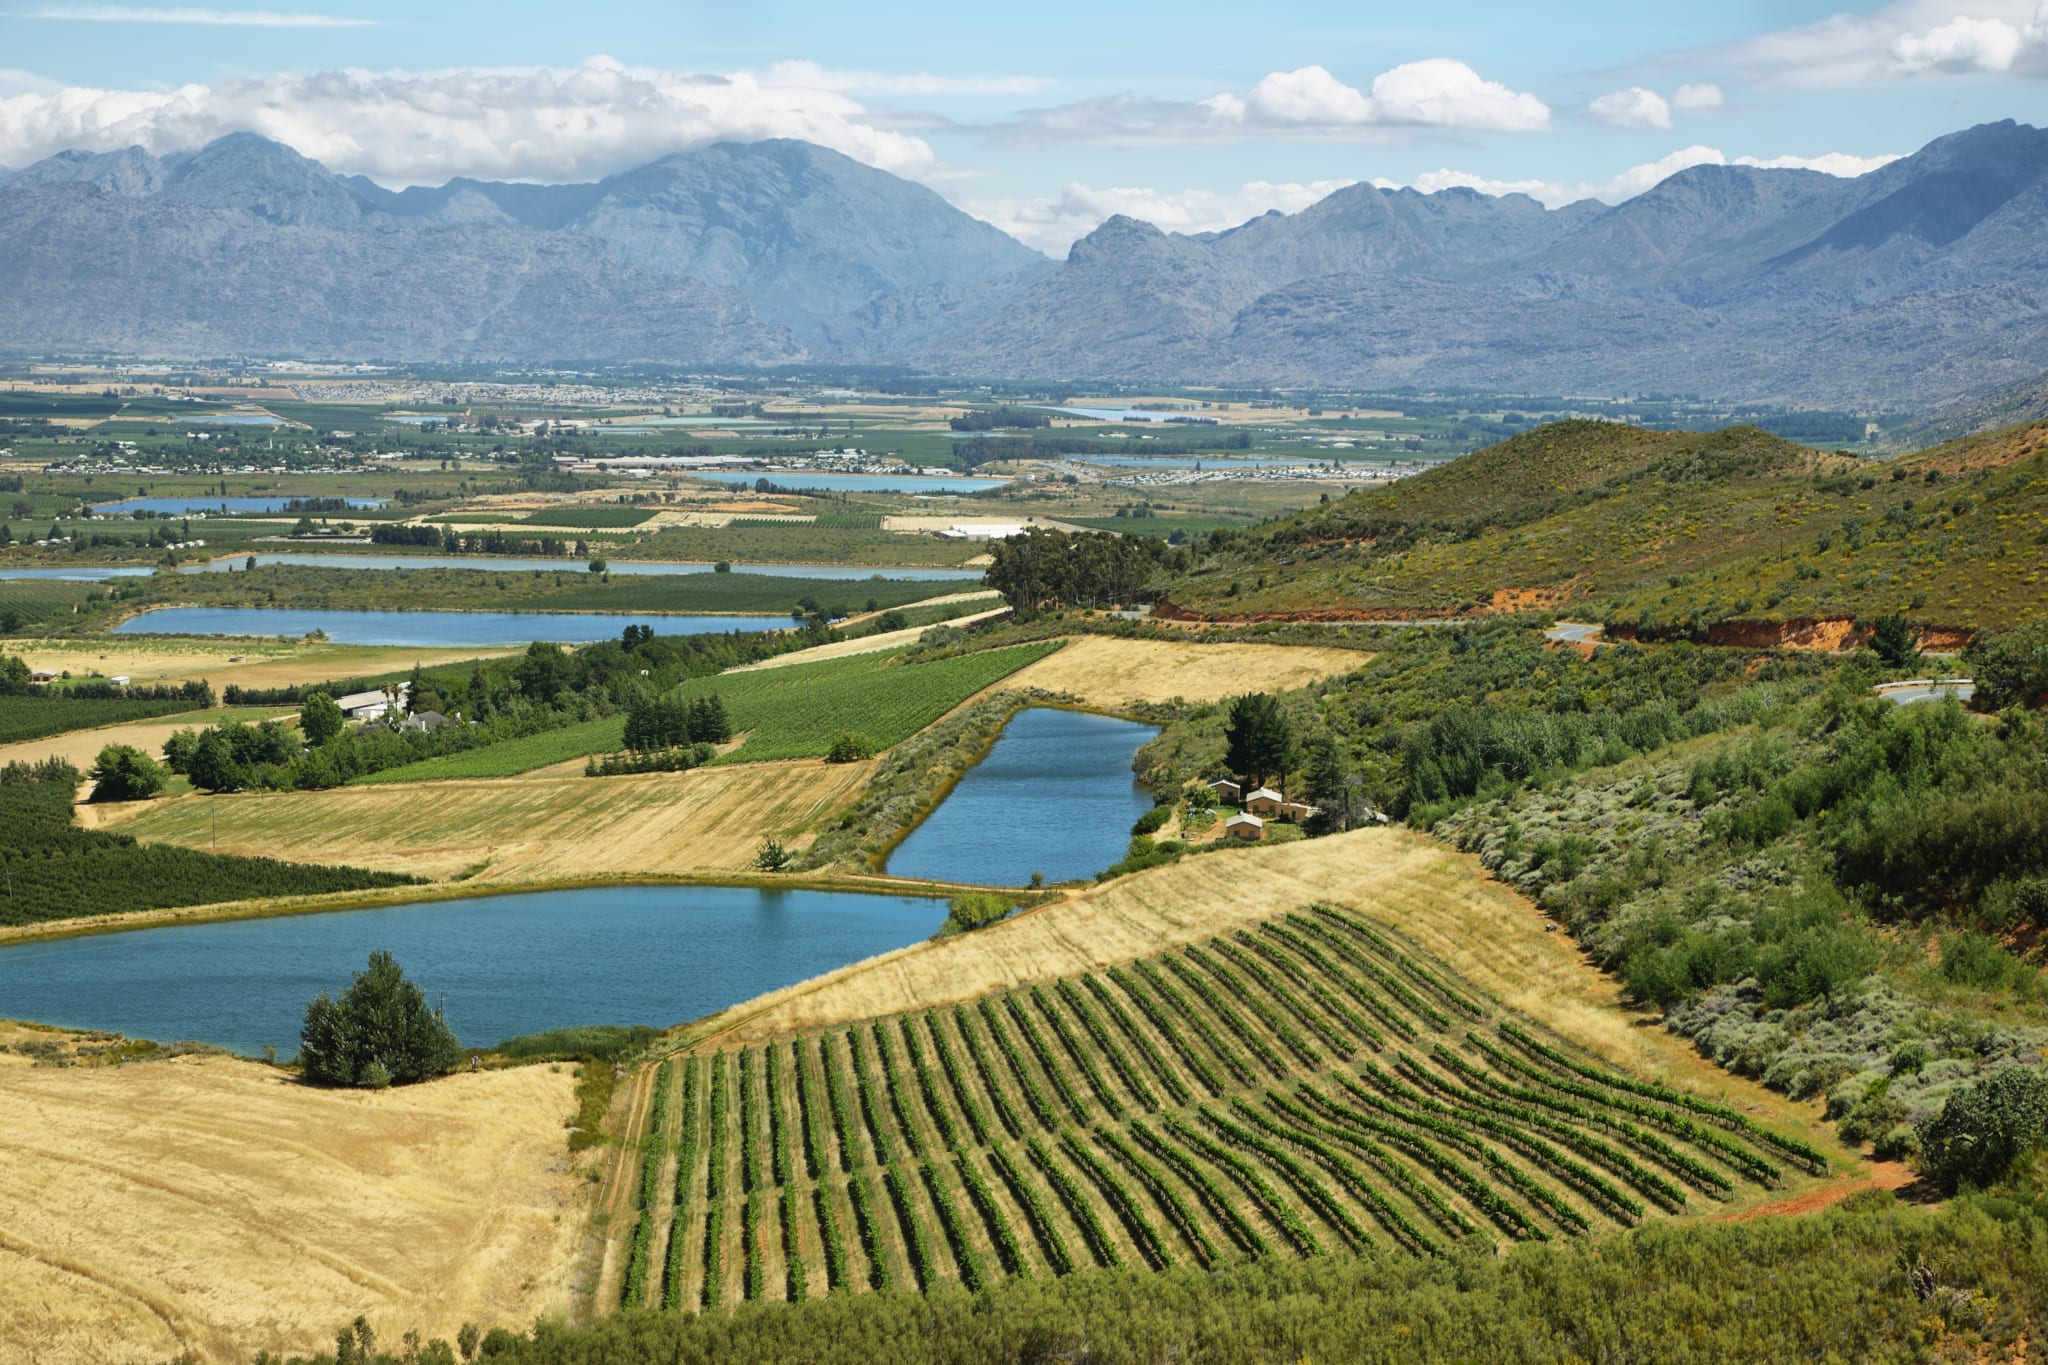 Landscape of lagoons and vineyards from Gydo Pass, South Africa